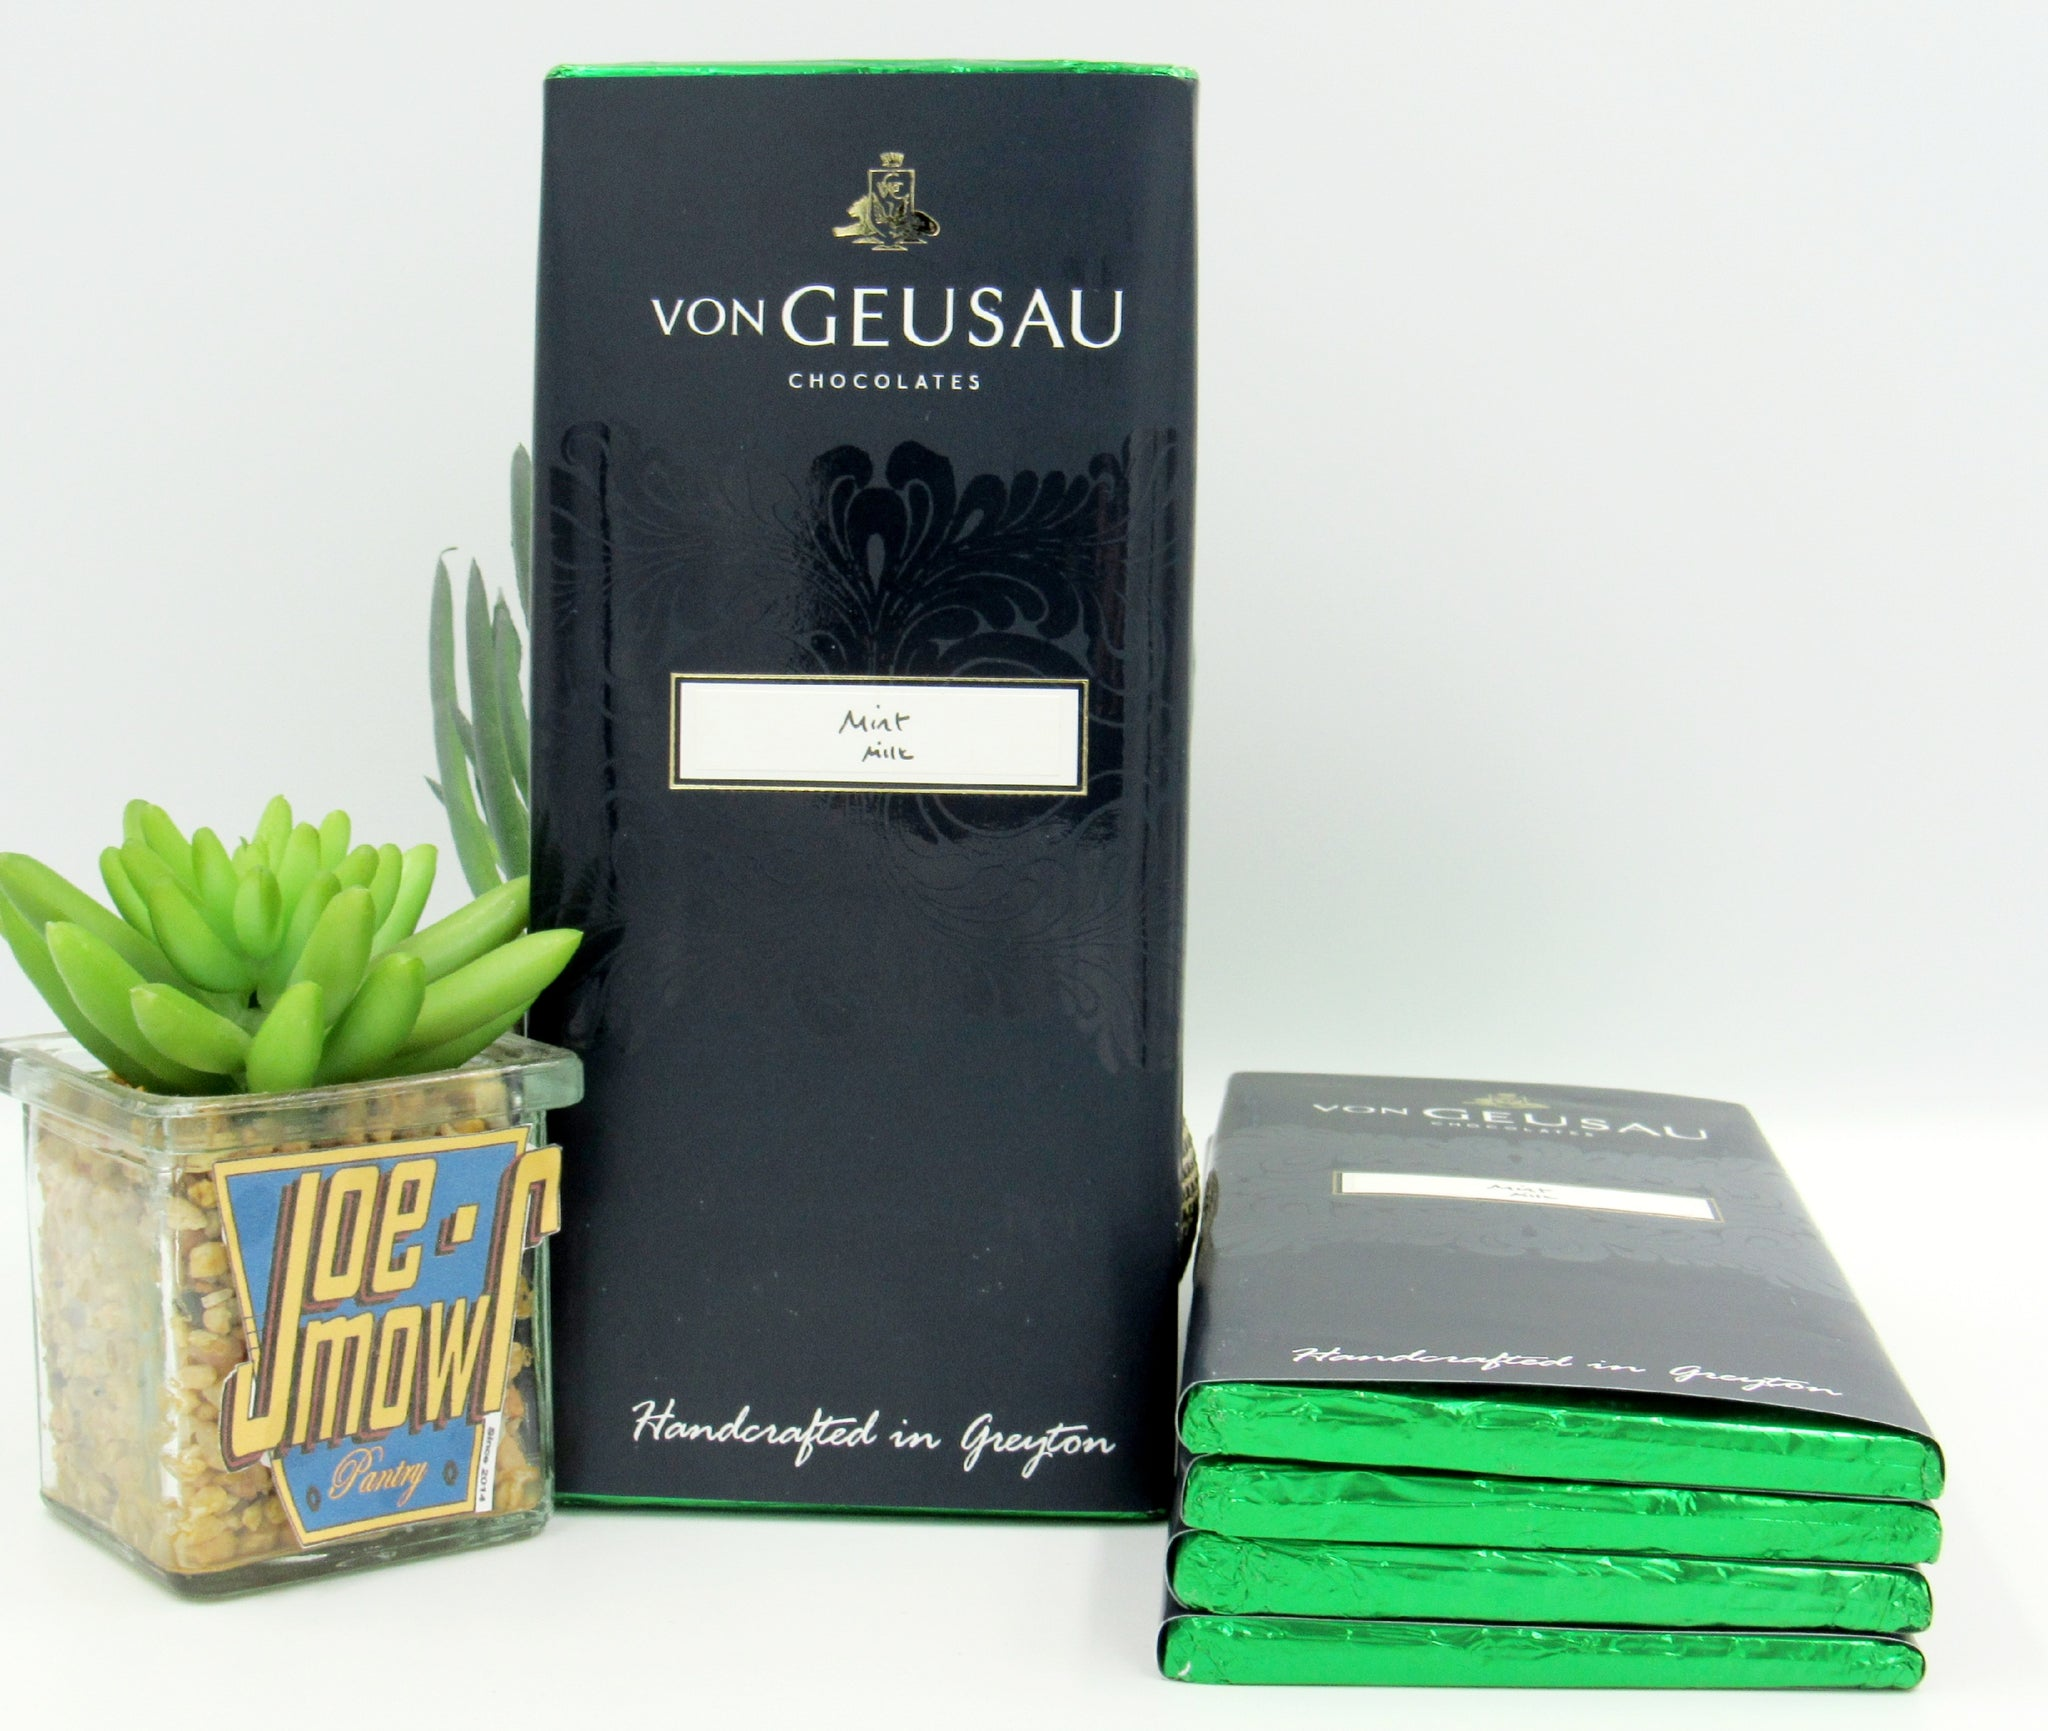 Von Geusau - Mint Milk Chocolate slab 100g